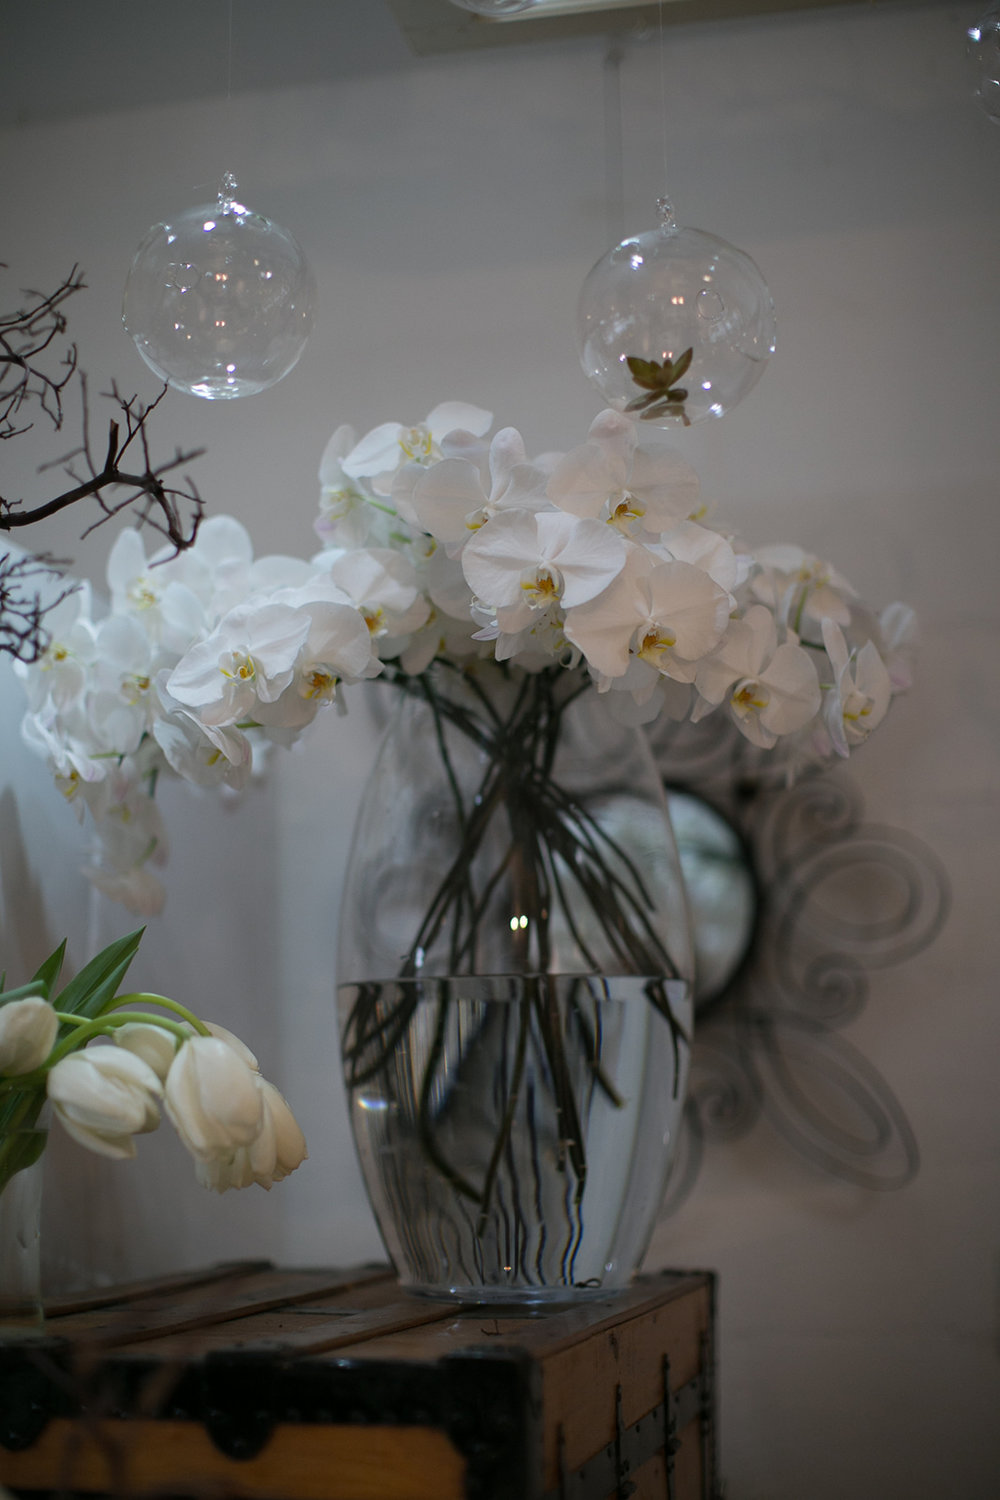 sarah bray photographyKelly Shannon Floral_14.jpg